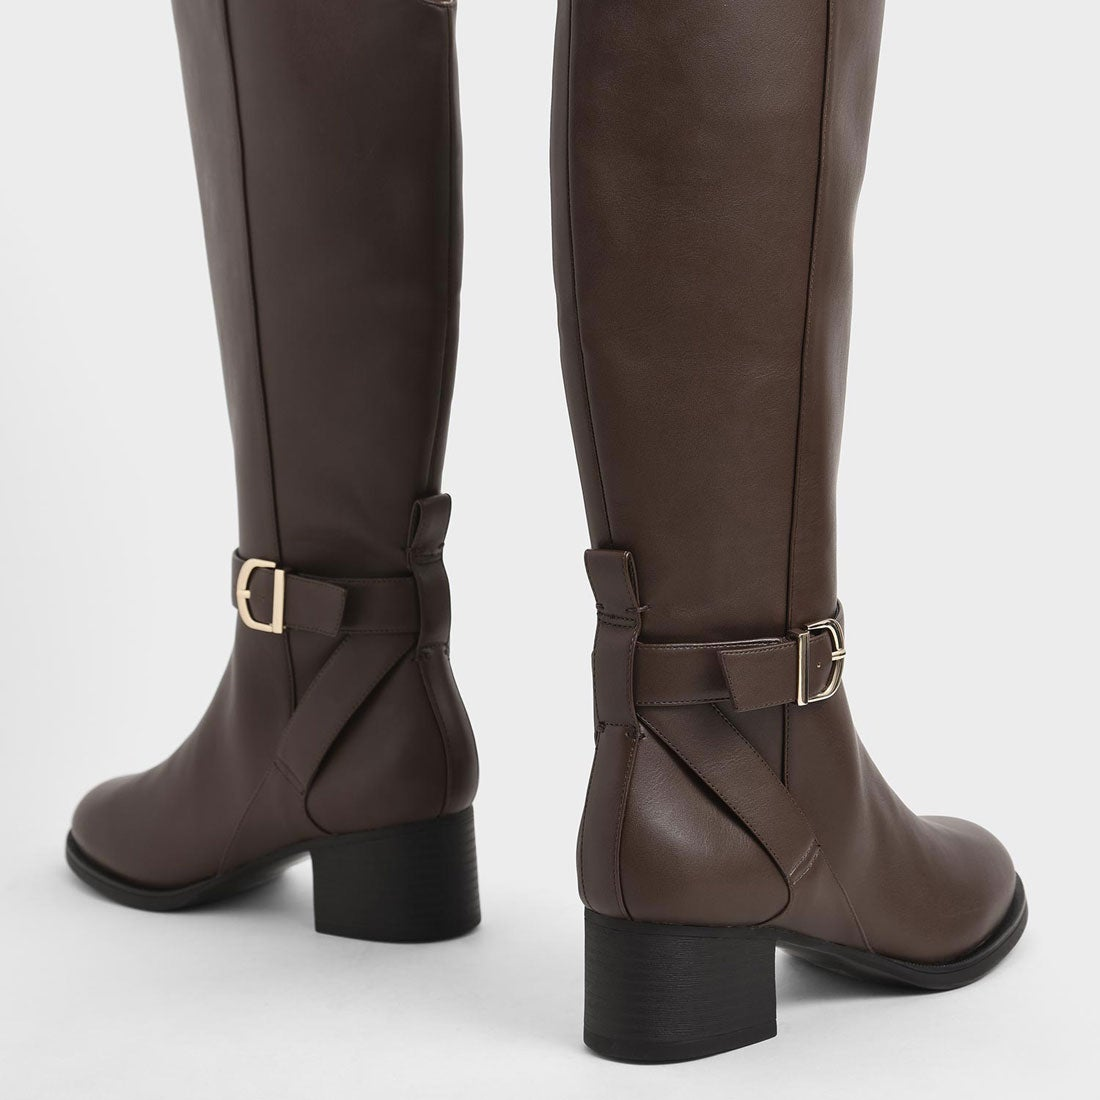 Chapter 16 Womens Knee High Buckle Riding Boots Tan